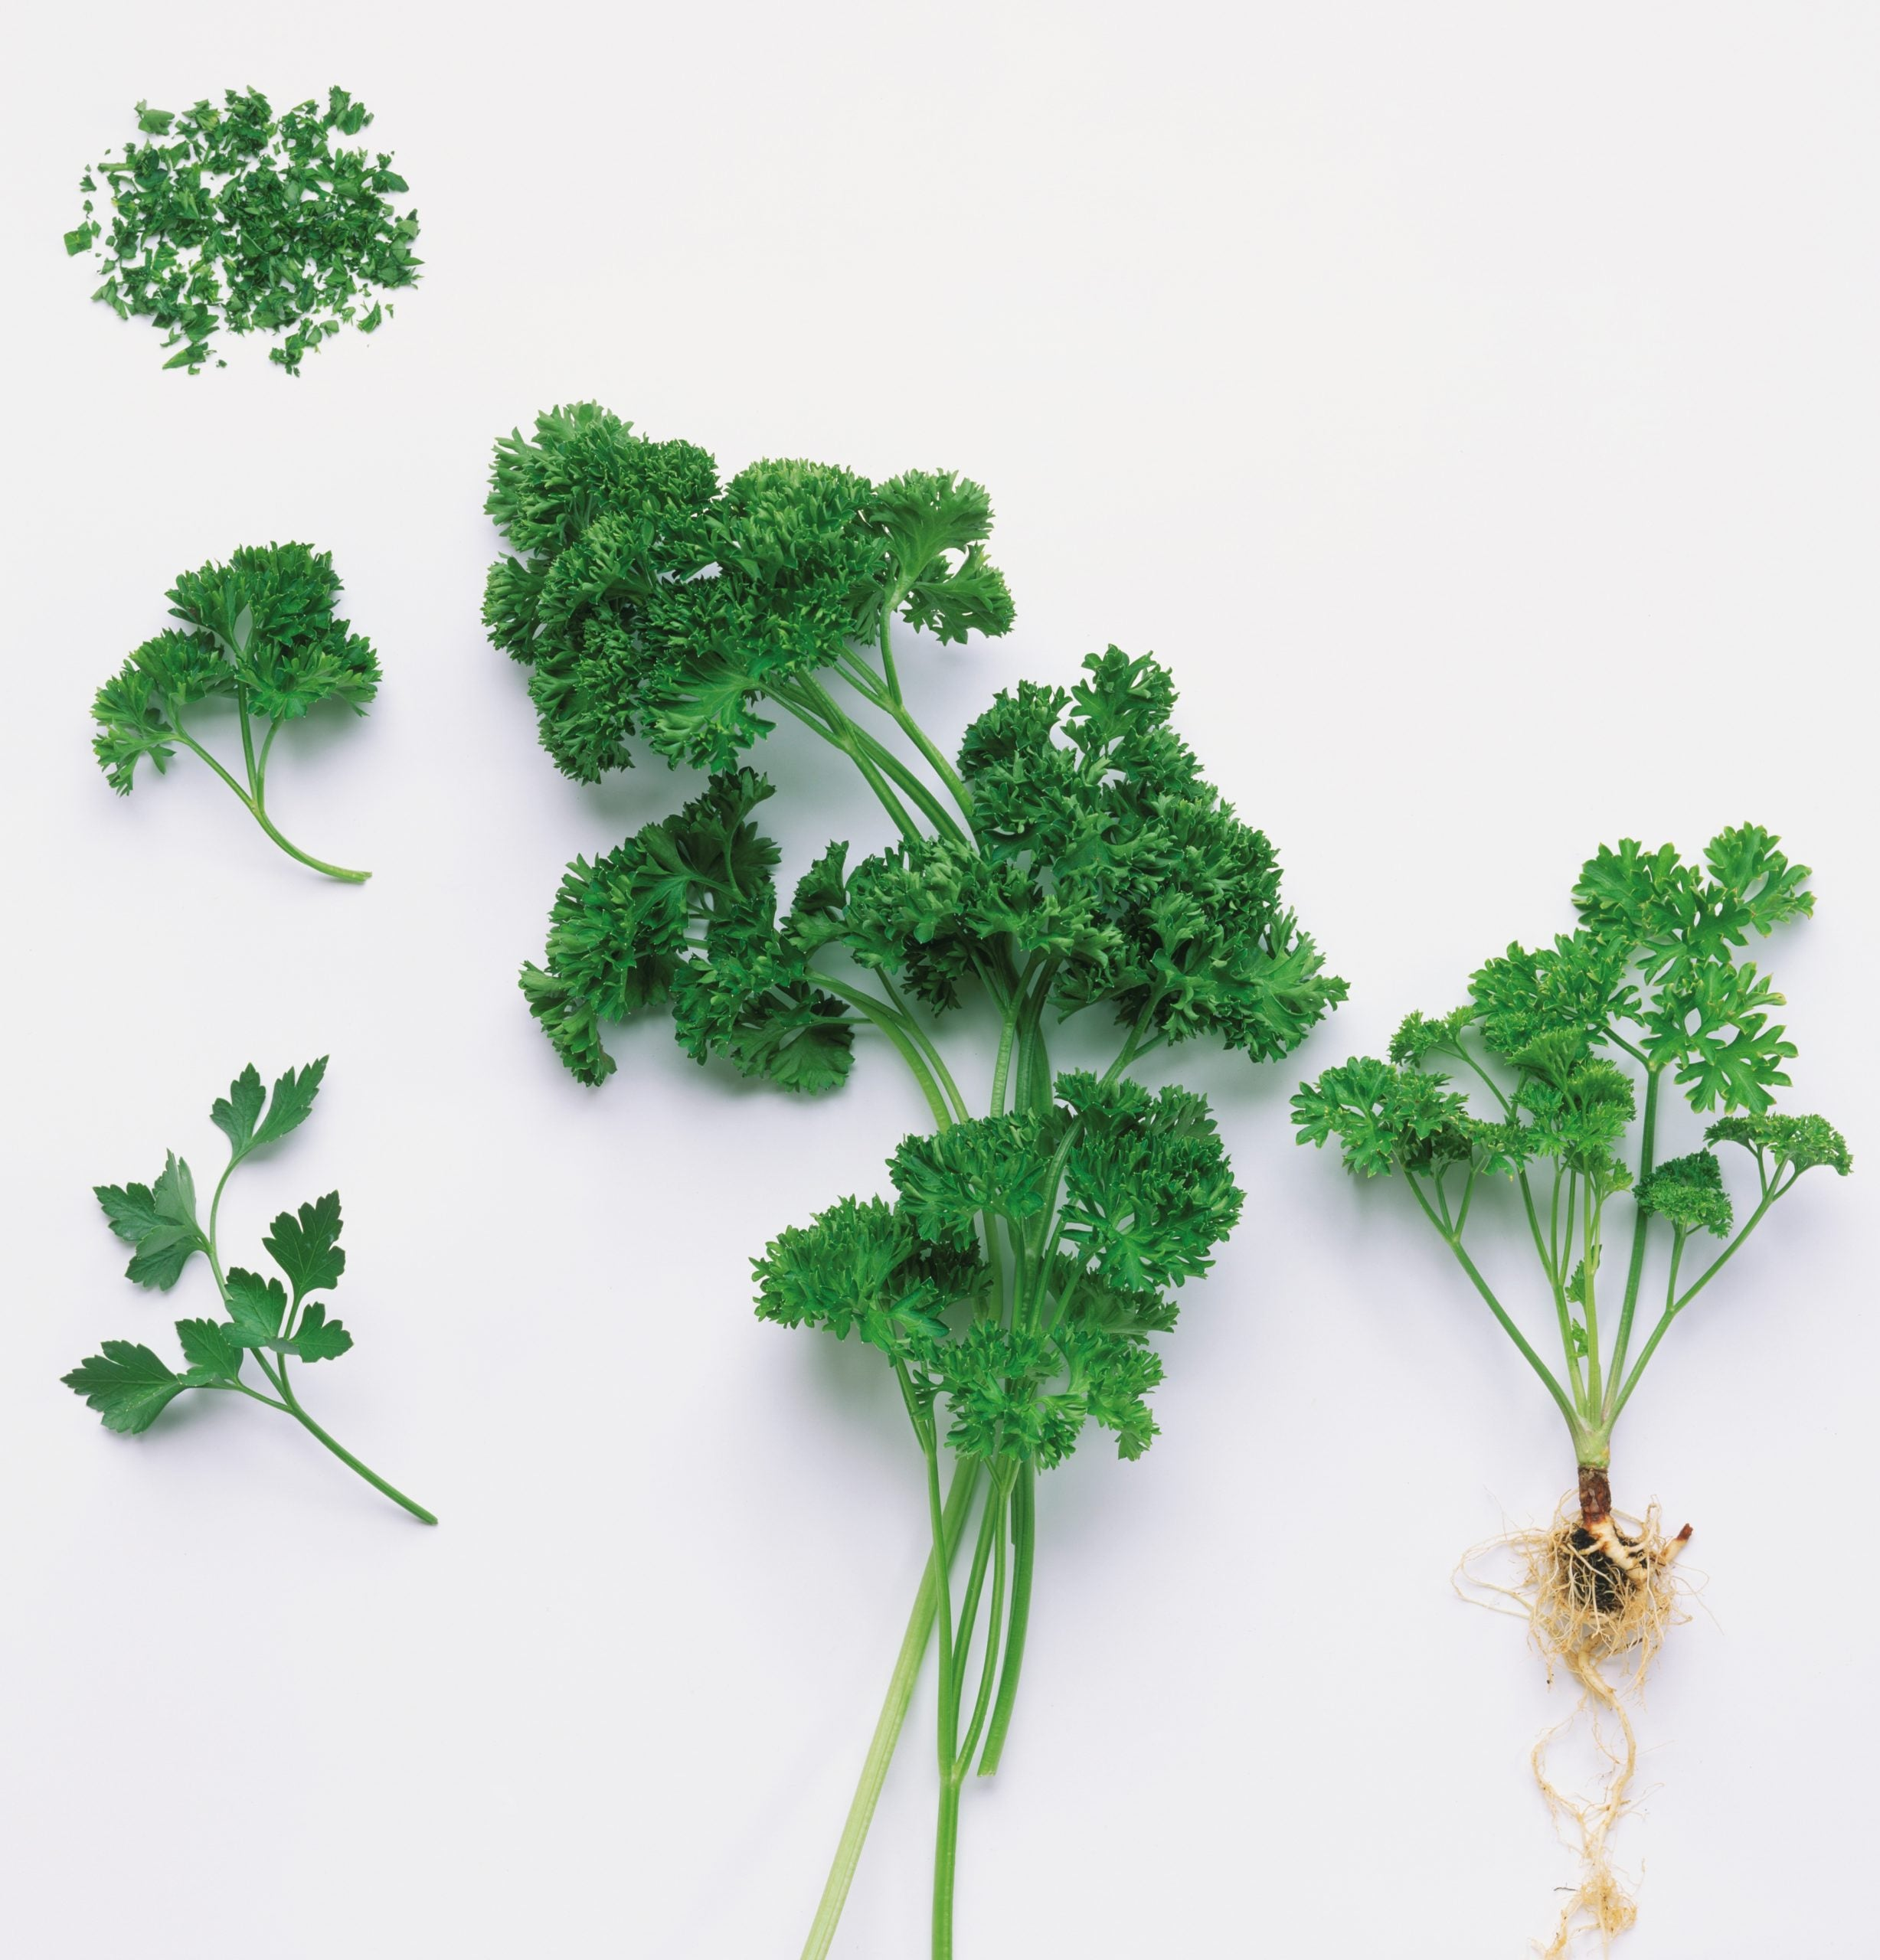 It's worrying that people buy up to 15 pots of supermarket parsley – it's so easy to grow at home